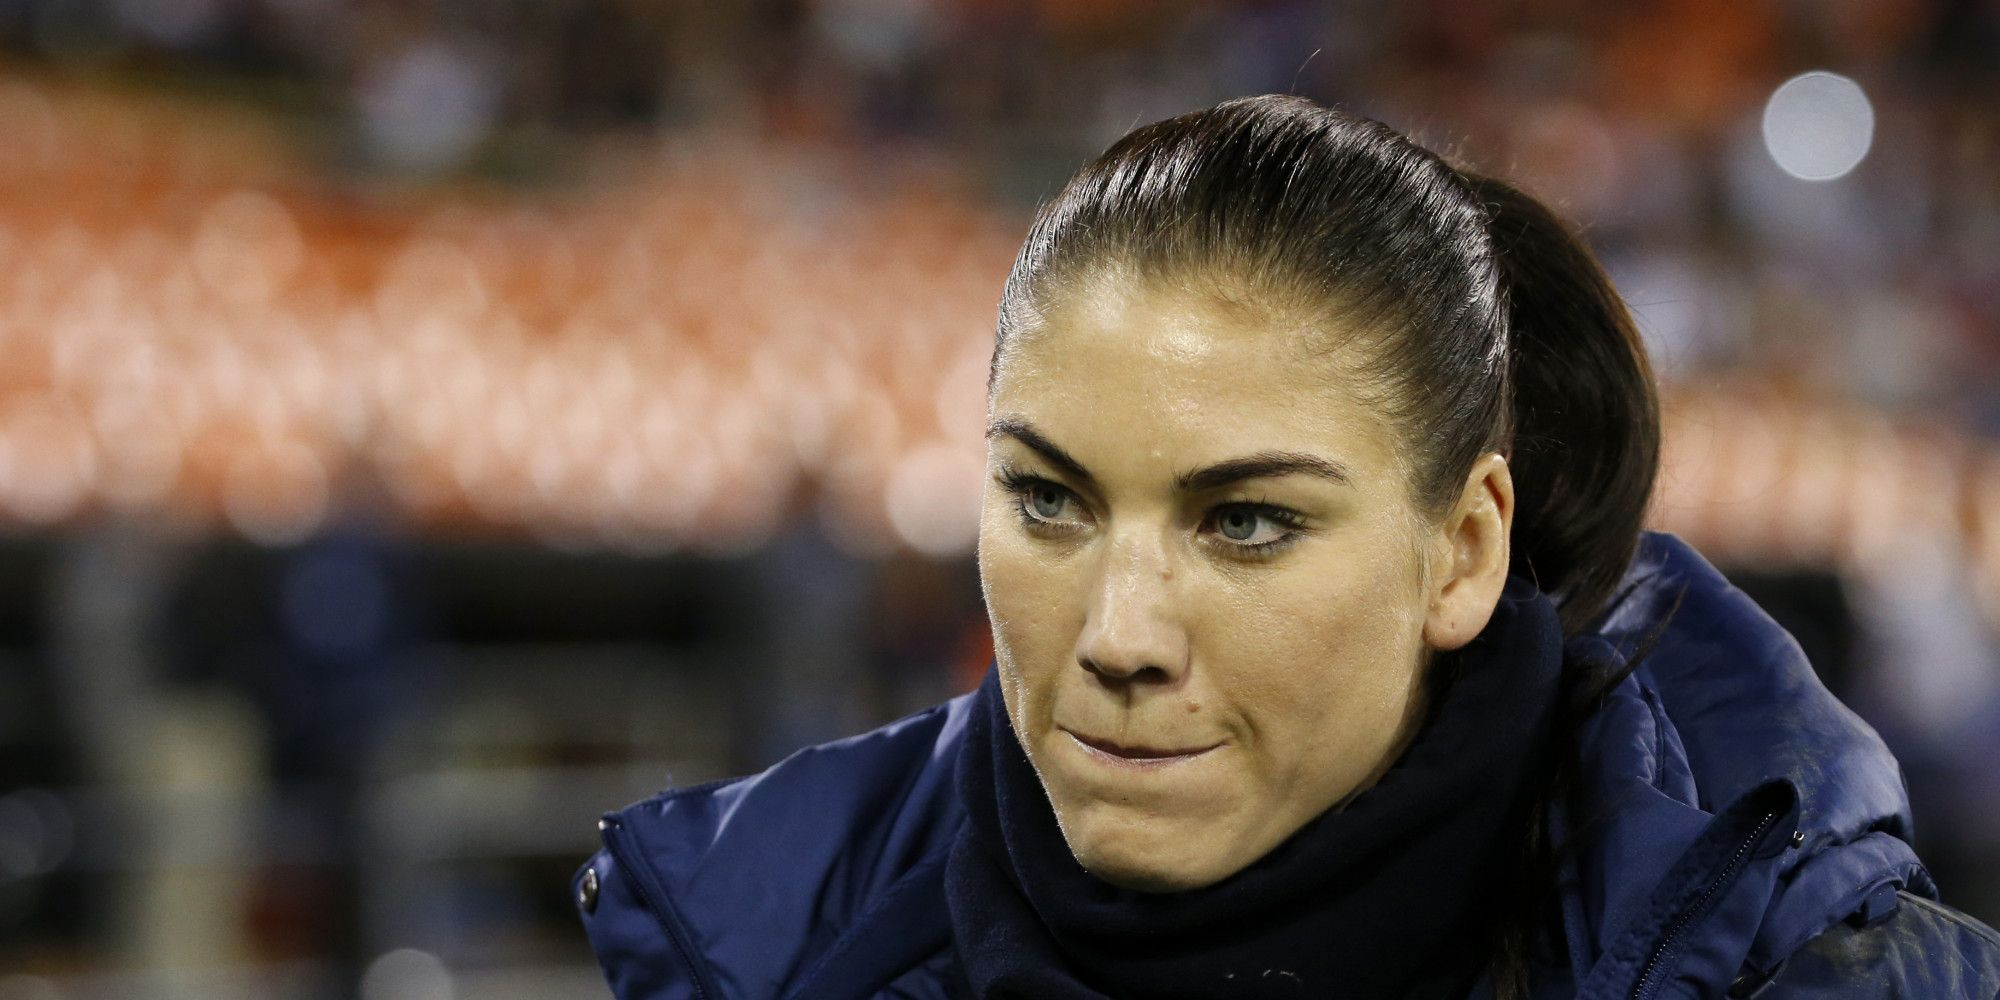 Top Sports Woman Hope Solo Hope solo, Richest